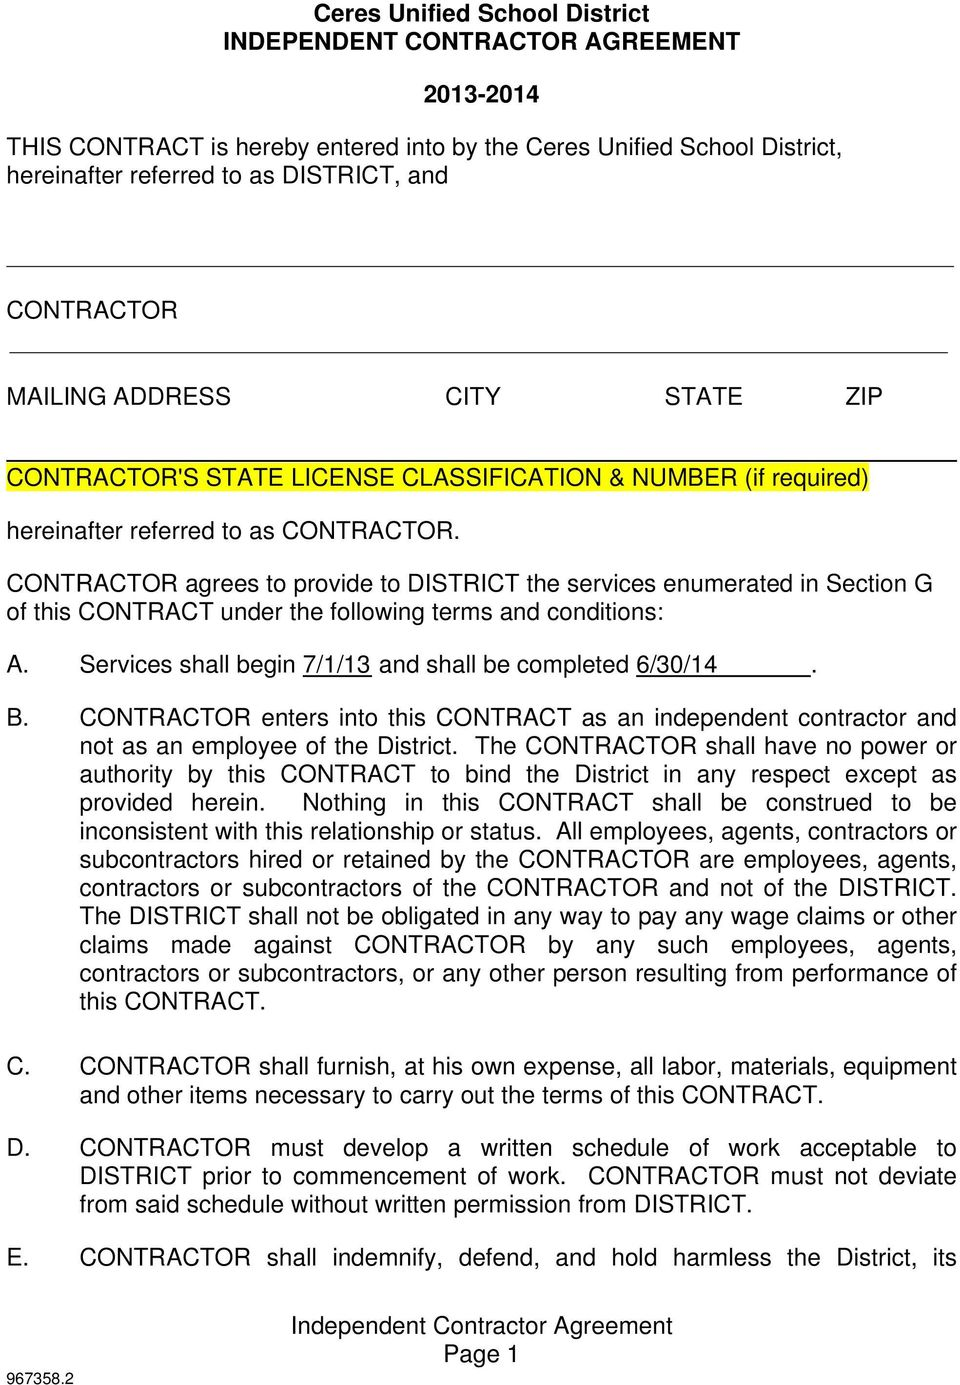 CONTRACTOR agrees to provide to DISTRICT the services enumerated in Section G of this CONTRACT under the following terms and conditions: A. Services shall begin 7/1/13 and shall be completed 6/30/14.